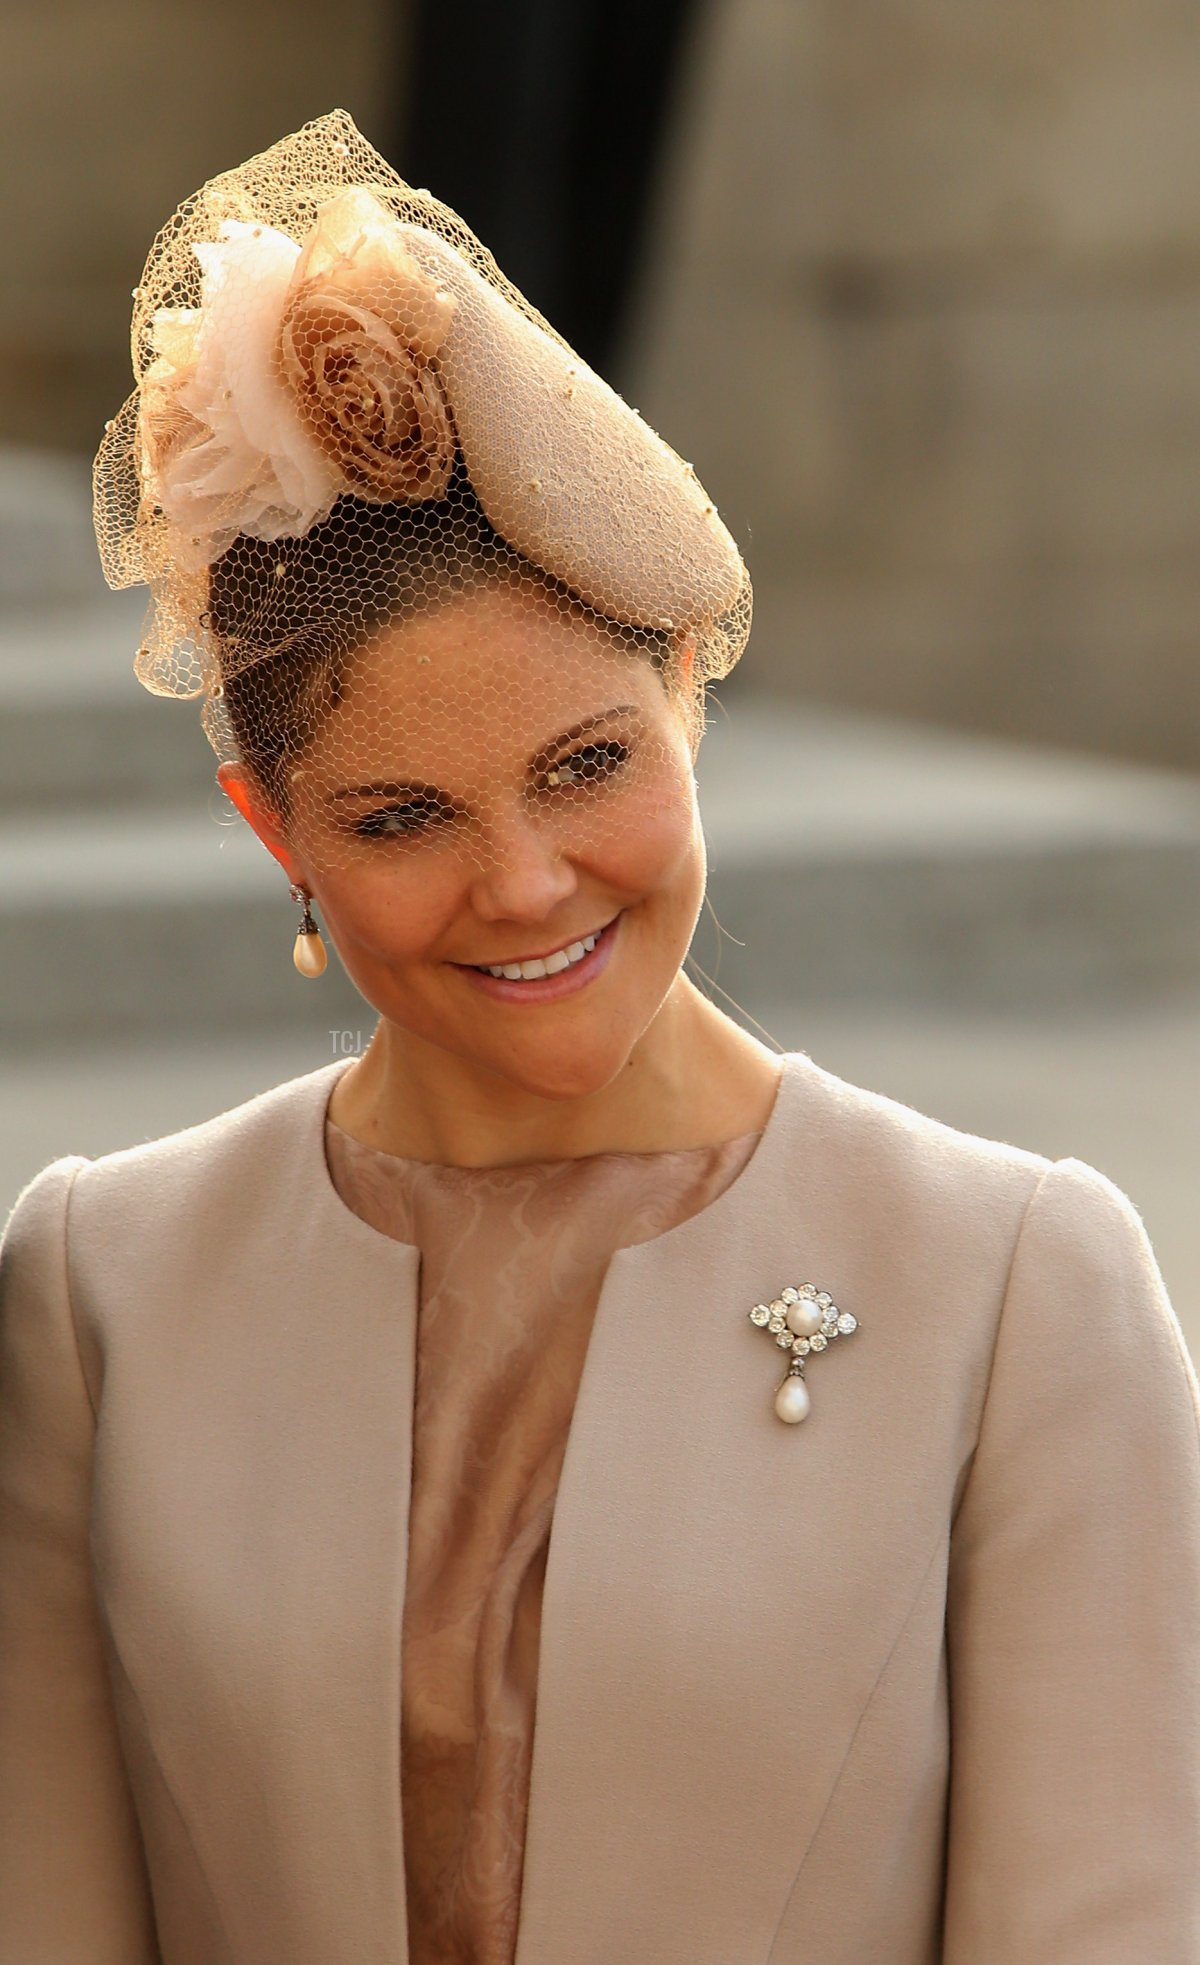 Crown Princess Victoria of Sweden attends the wedding ceremony of Prince Guillaume Of Luxembourg and Princess Stephanie of Luxembourg at the Cathedral of our Lady of Luxembourg on October 20, 2012 in Luxembourg